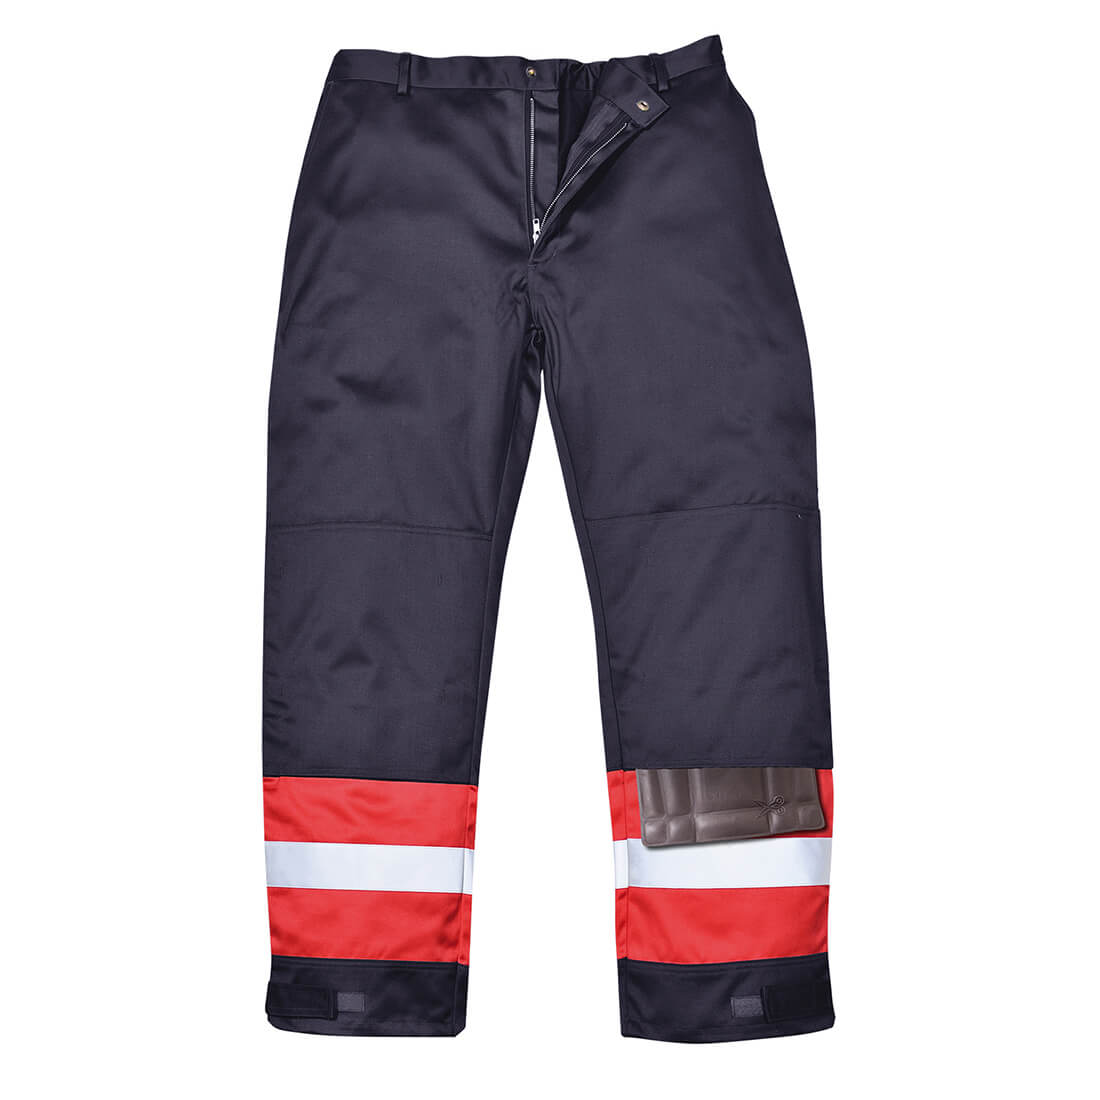 Image of Biz Flame Mens Flame Resistant Plus Trousers Navy Blue 2XL 32""